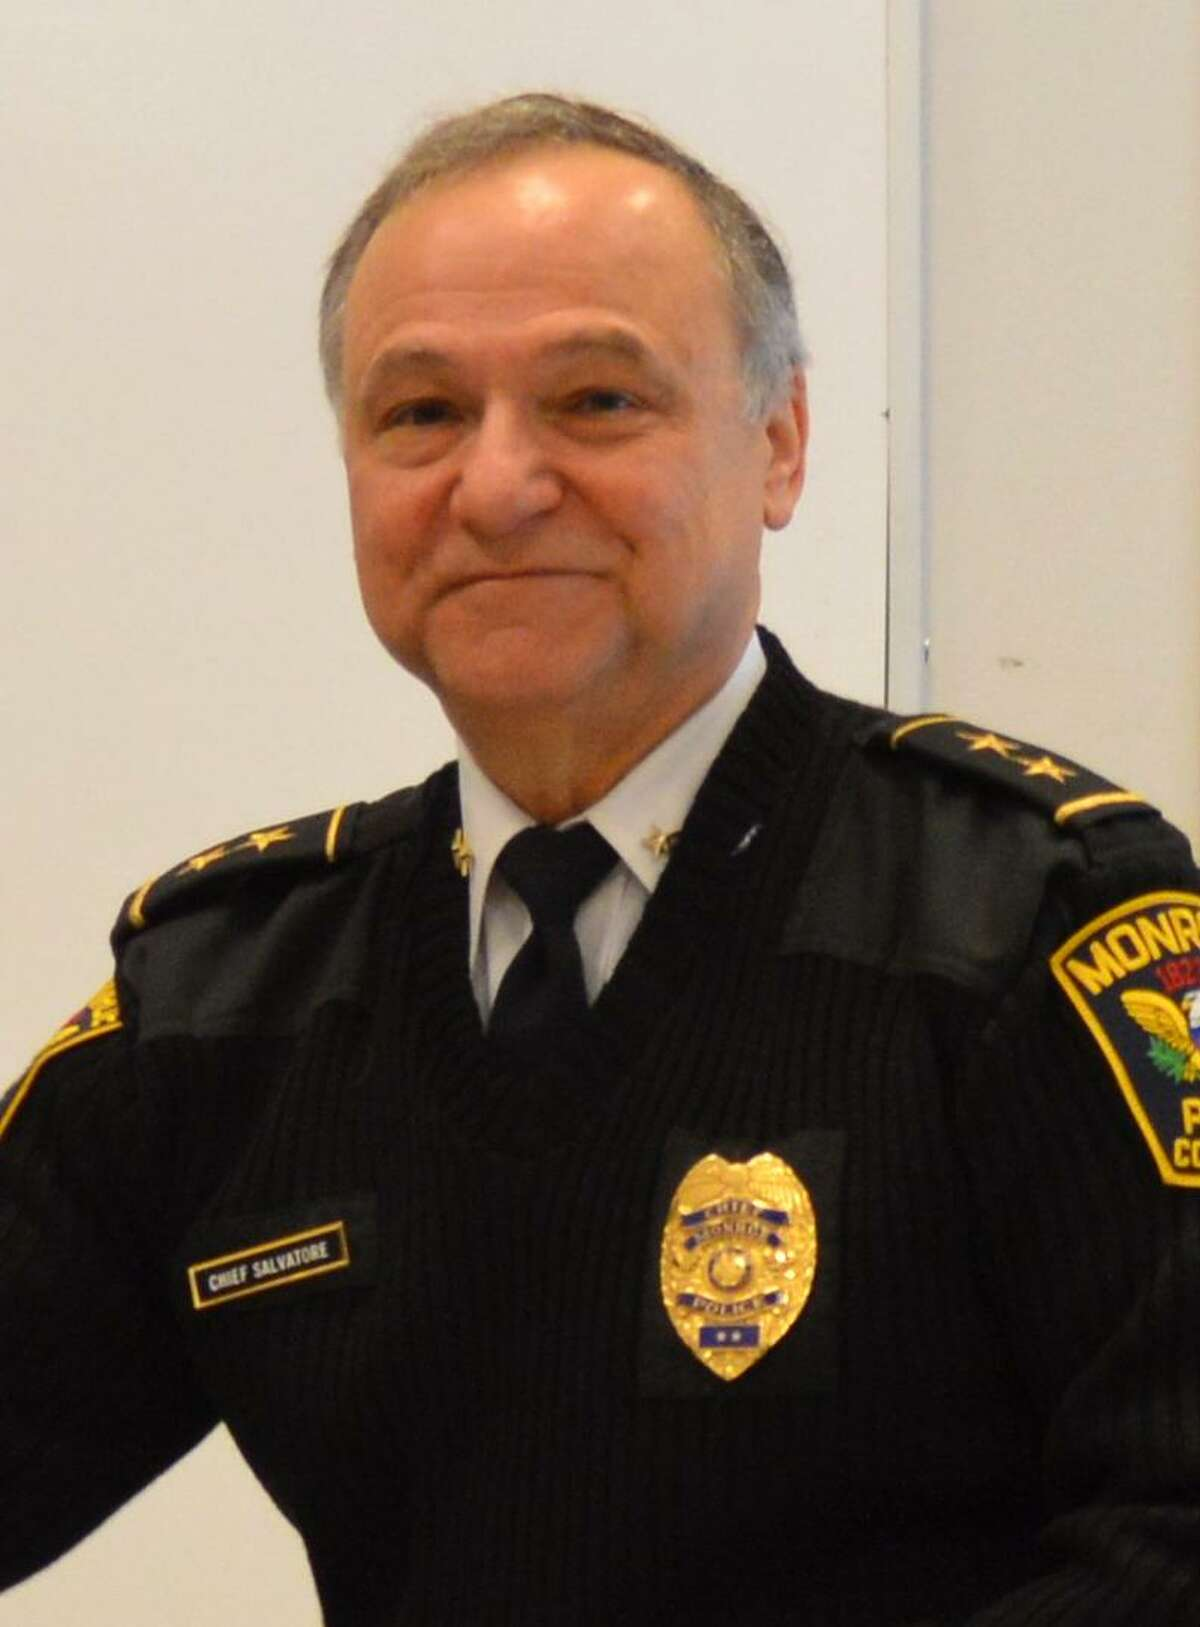 Chief John L. Salvatore of the Monroe Police Department is president of the Connecticut Police Chiefs Association.